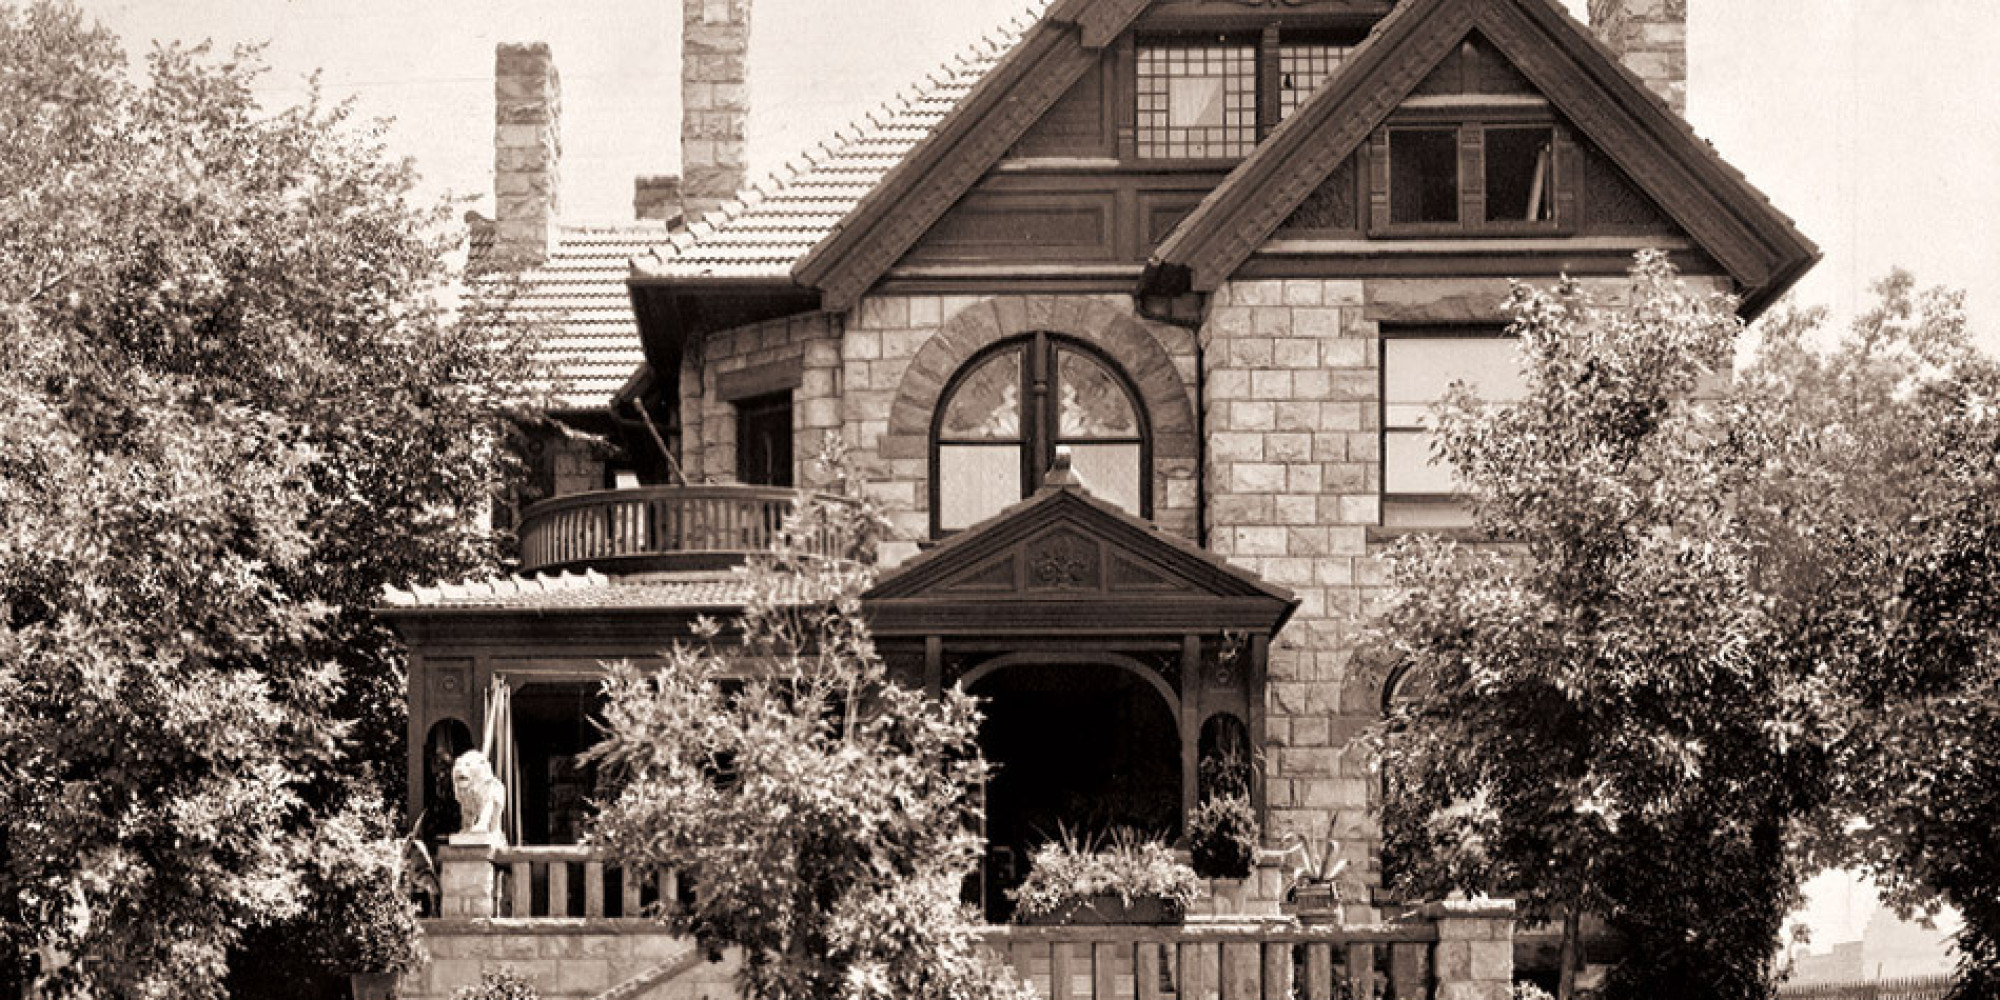 Peachy The Stories Behind 3 Of Americas Most Haunted Houses The Largest Home Design Picture Inspirations Pitcheantrous